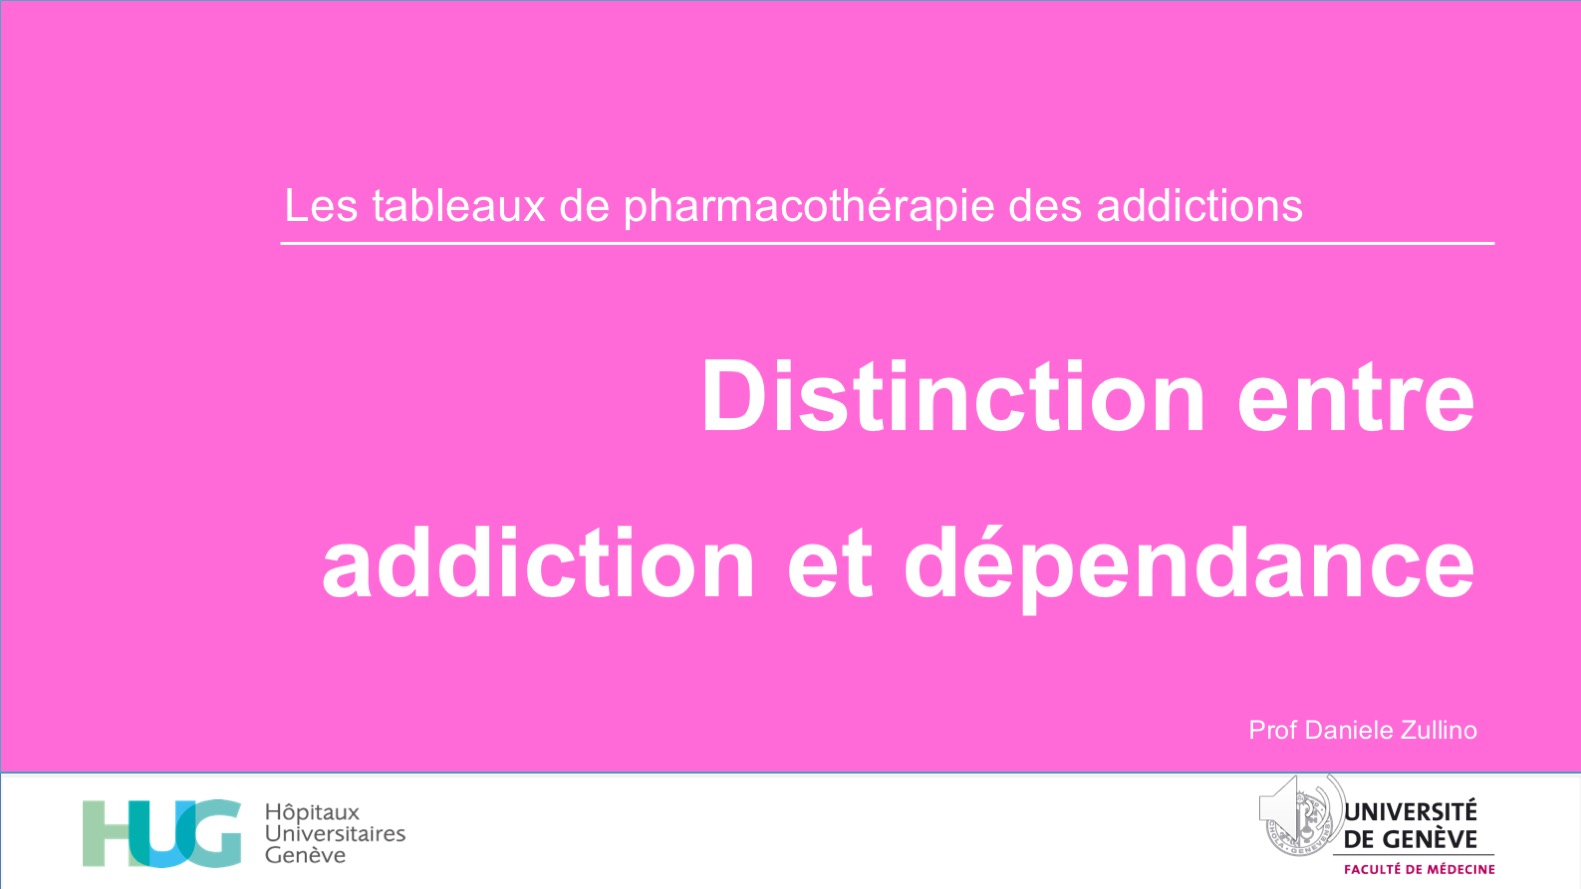 Distinction entre addiction et dépendance